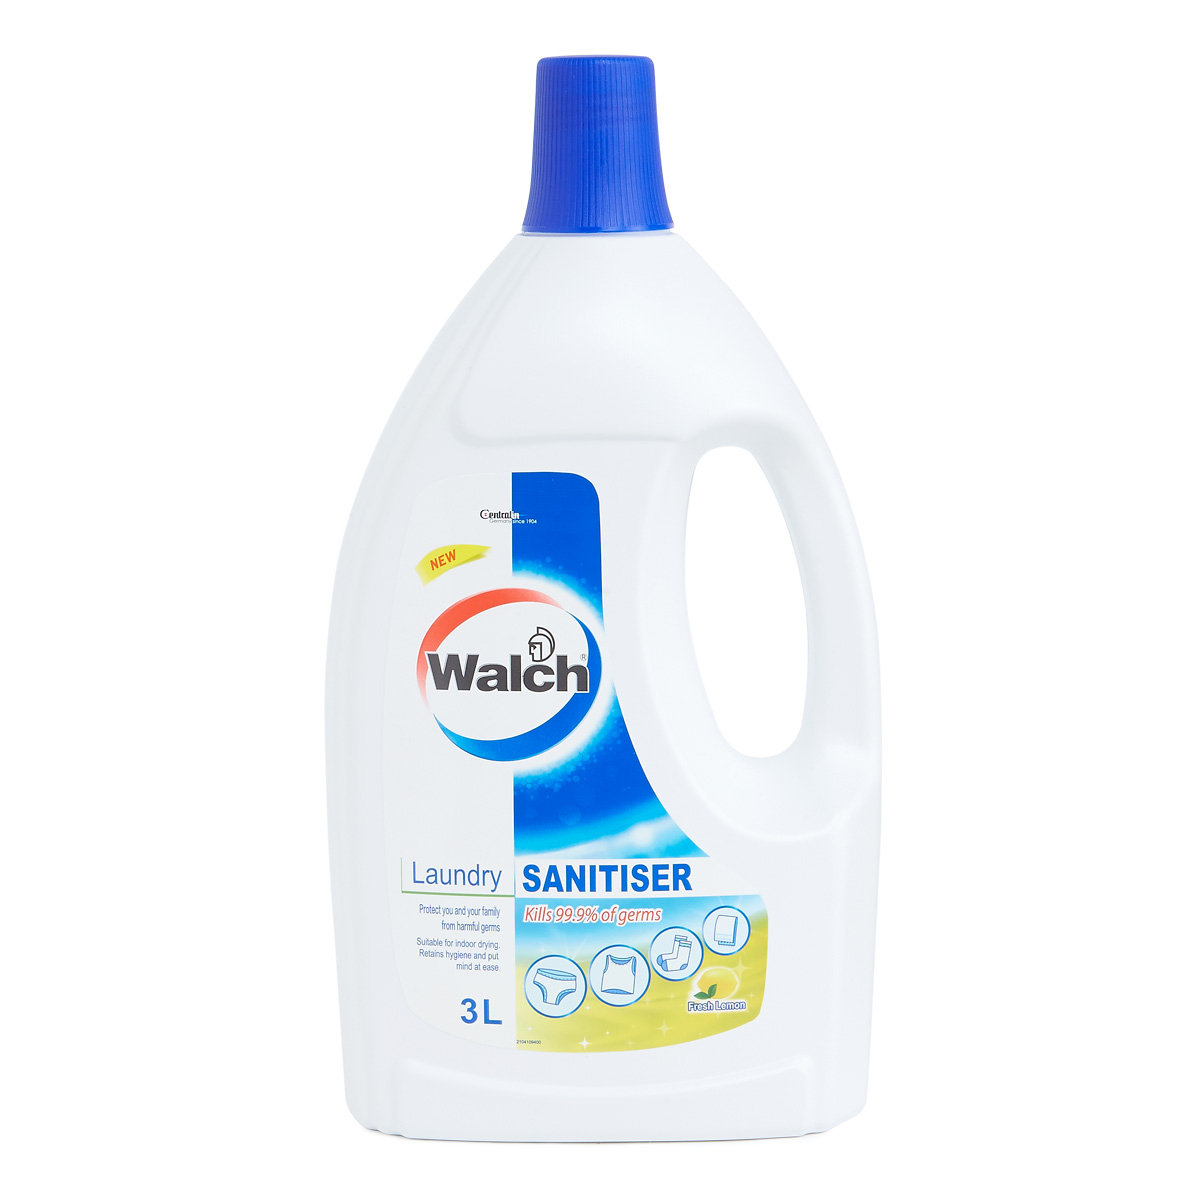 Laundry Sanitiser - Lemon